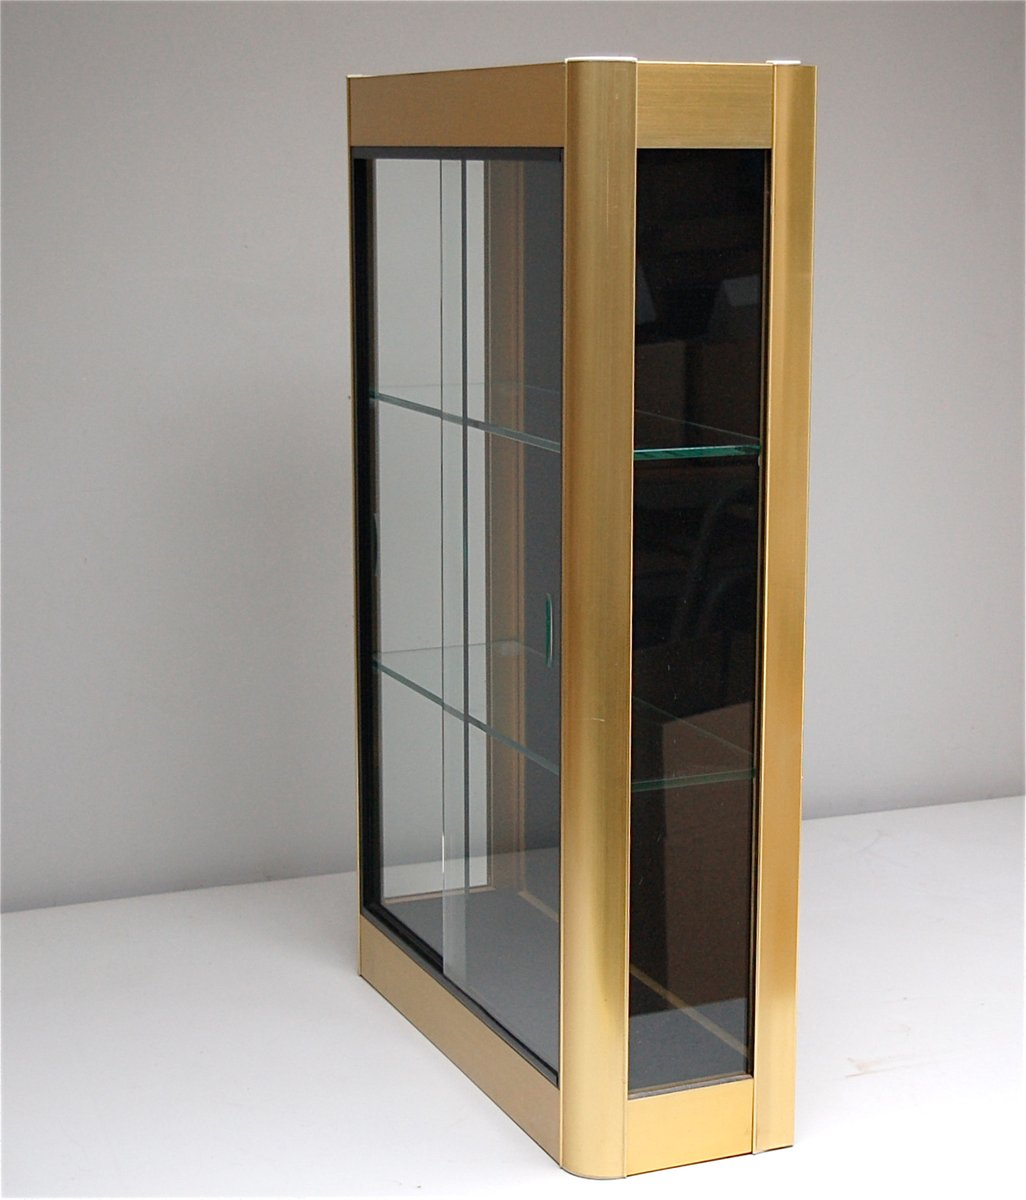 gold wall display cabinet with sliding glass doors 1970s for sale at pamono. Black Bedroom Furniture Sets. Home Design Ideas